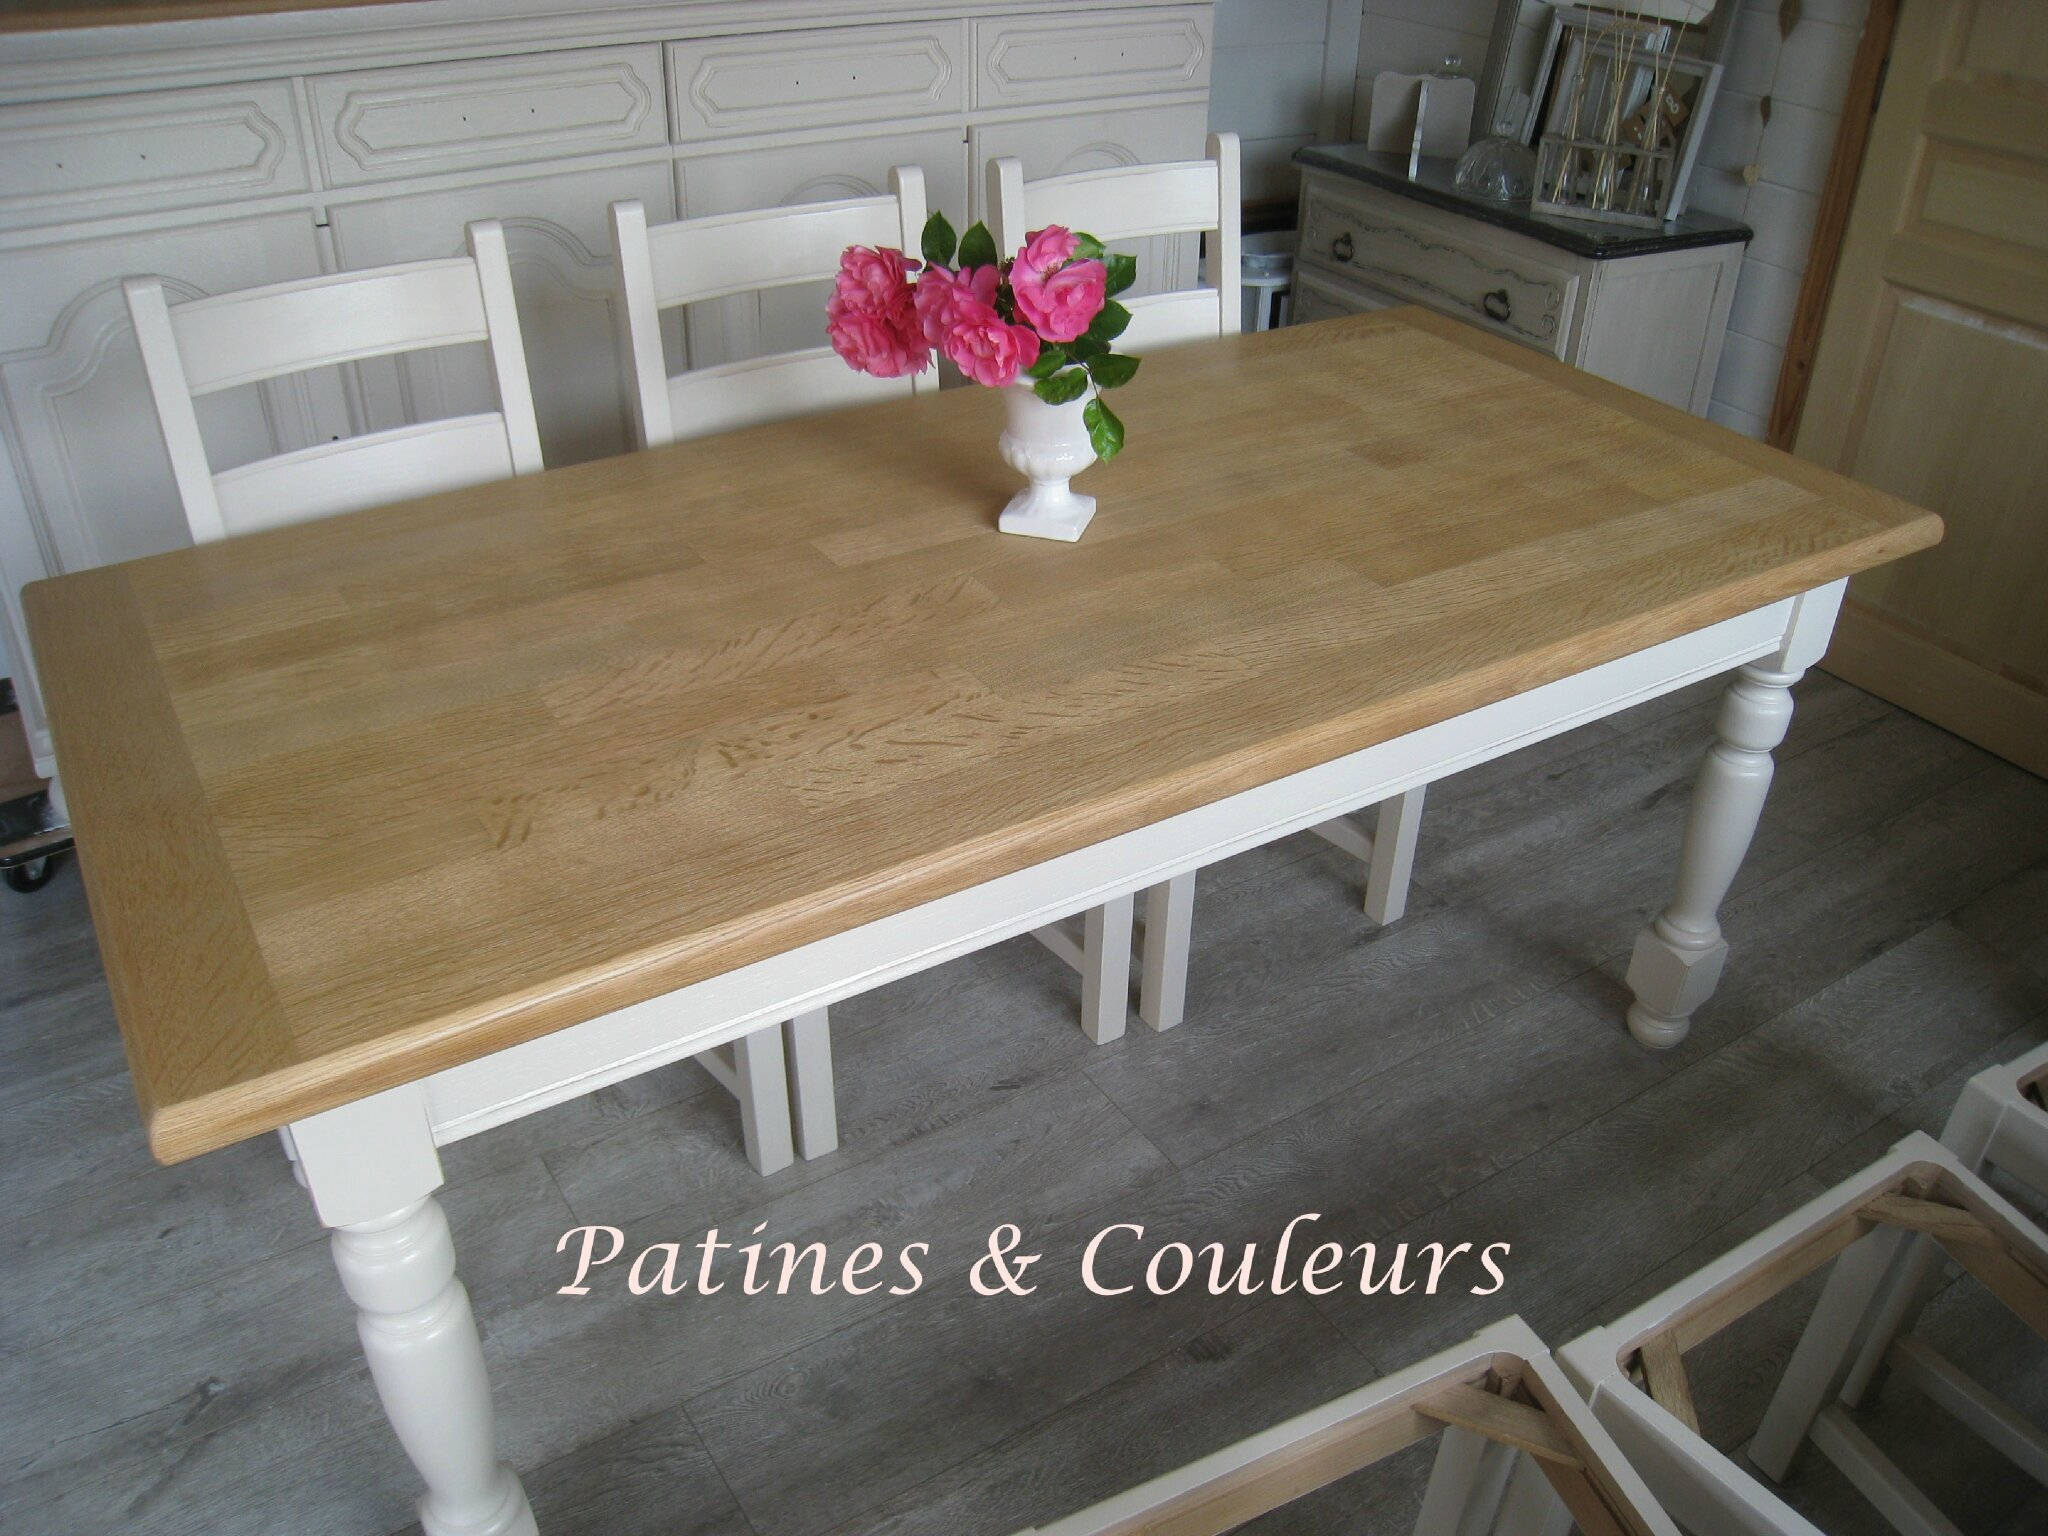 une salle manger relook e ch ne et h tre patines couleurs. Black Bedroom Furniture Sets. Home Design Ideas